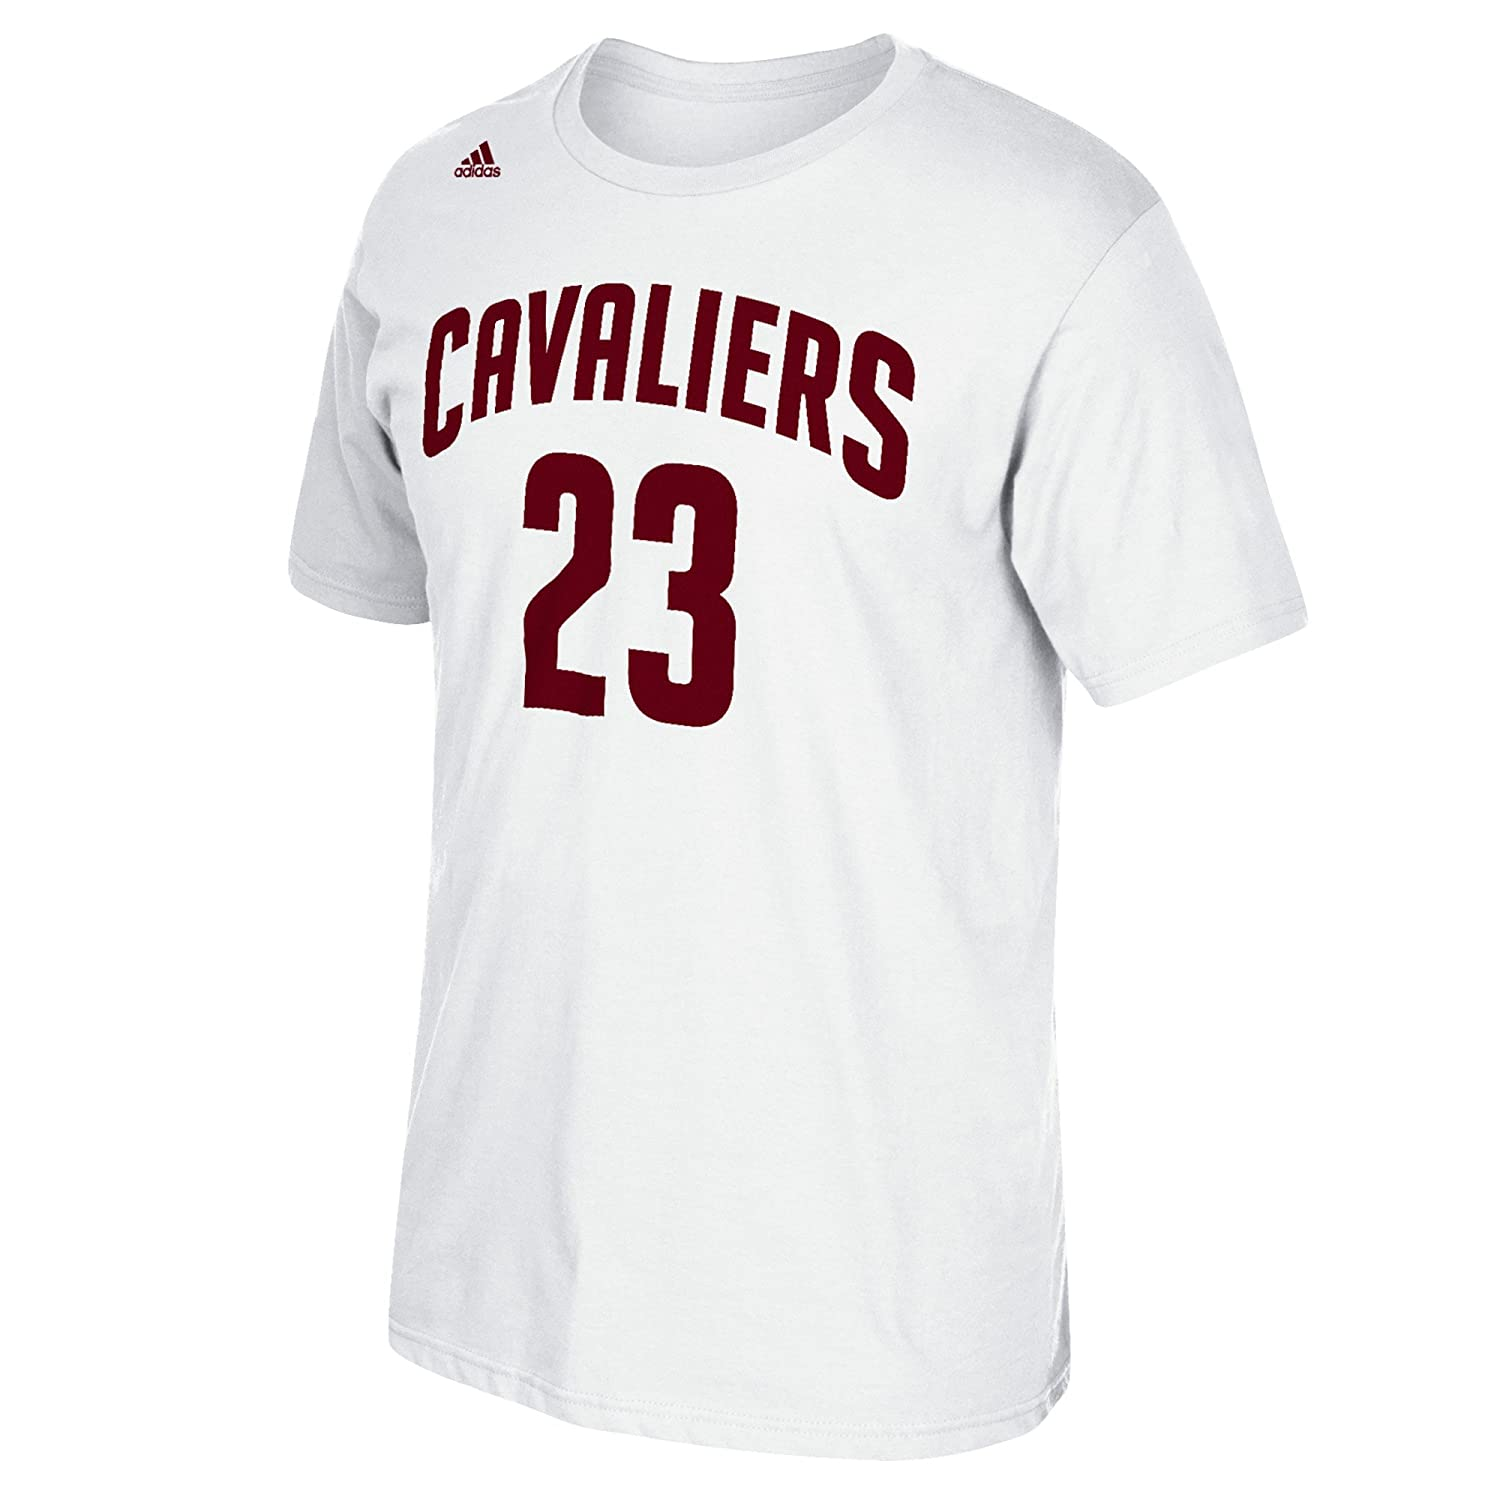 NBA Cleveland Cavaliers LeBron James #24 Men's 7 Series Name & Number Short  Sleeve Tee, Large, White: Amazon.in: Sports, Fitness & Outdoors